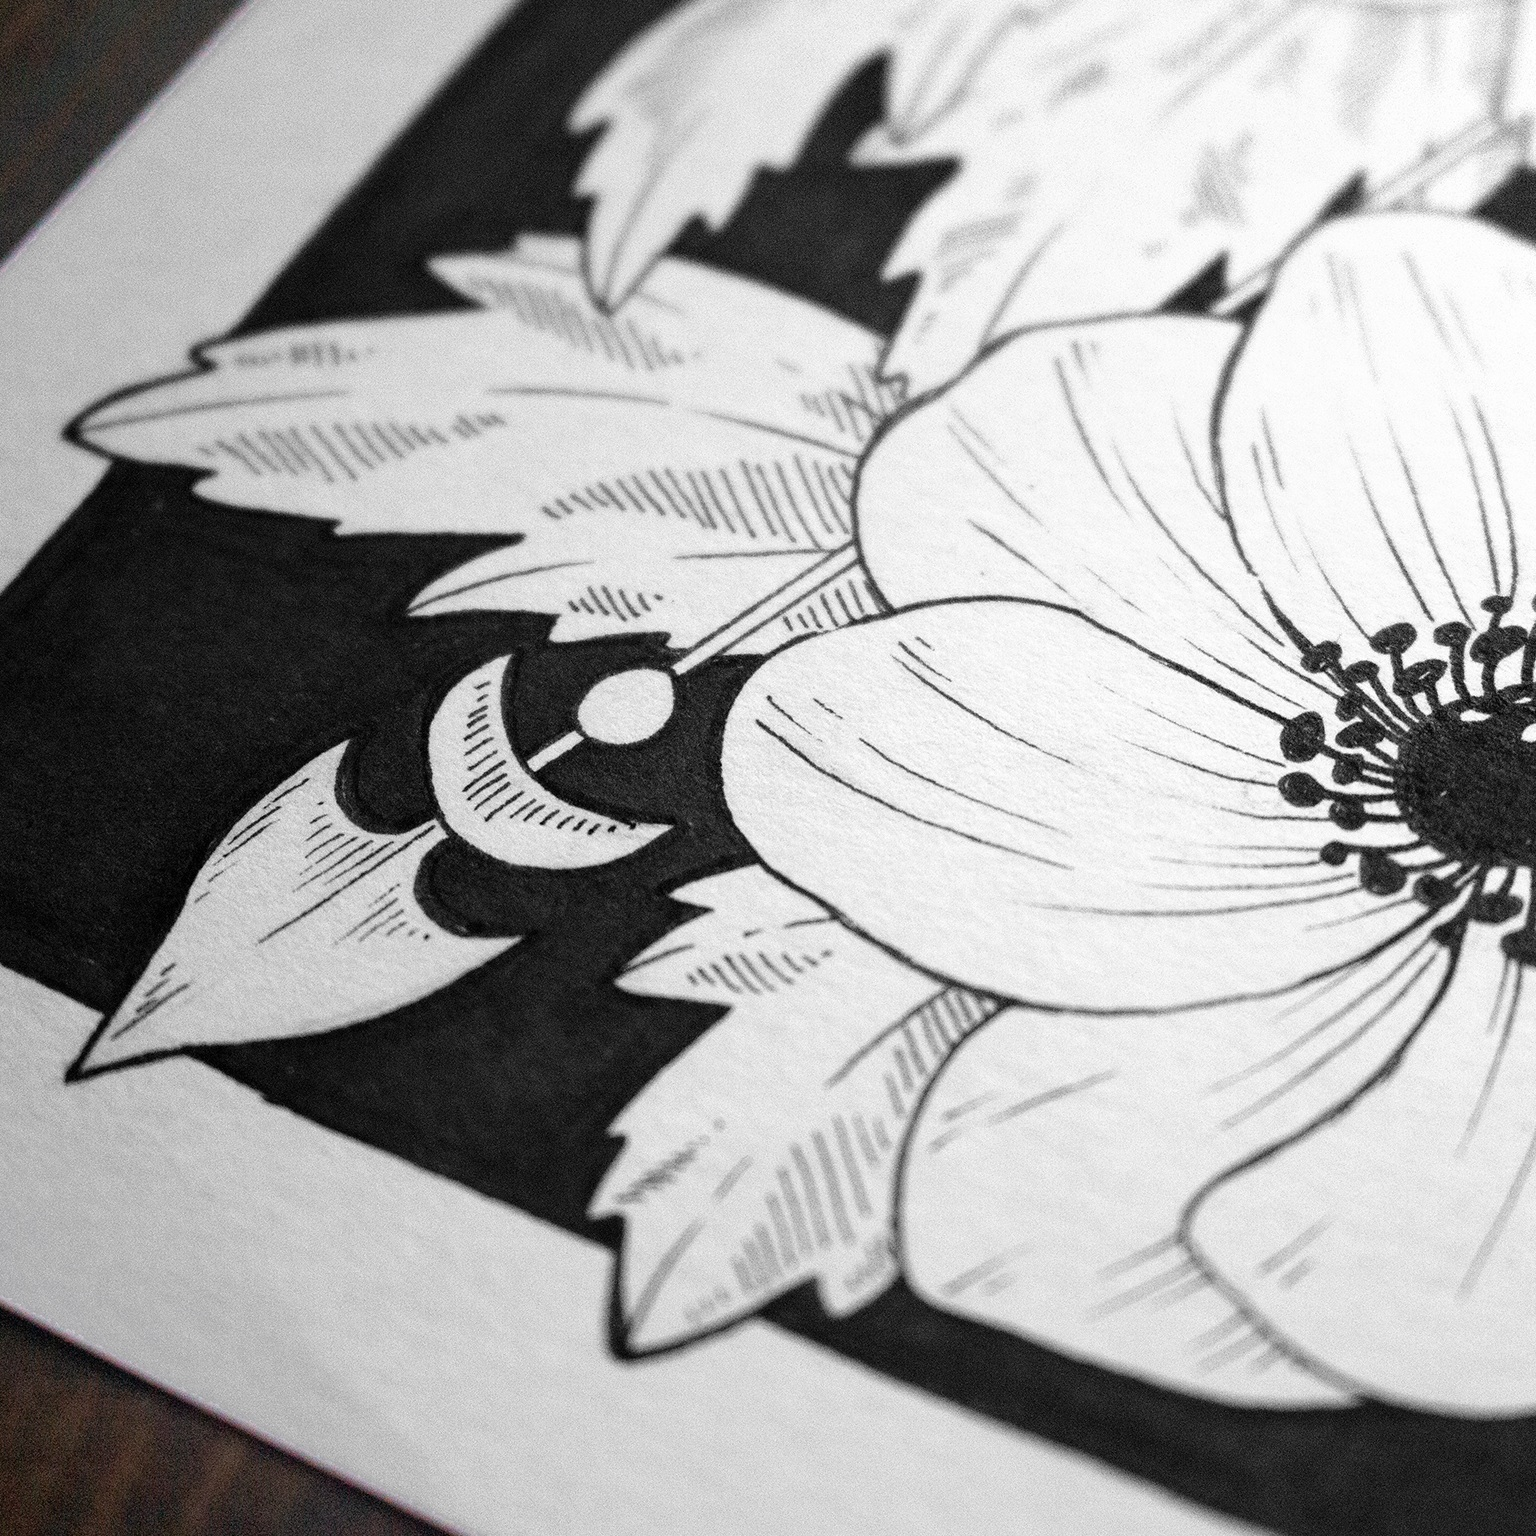 Jenn Sneary Illustration, Anemone, floral pen and Ink drawings